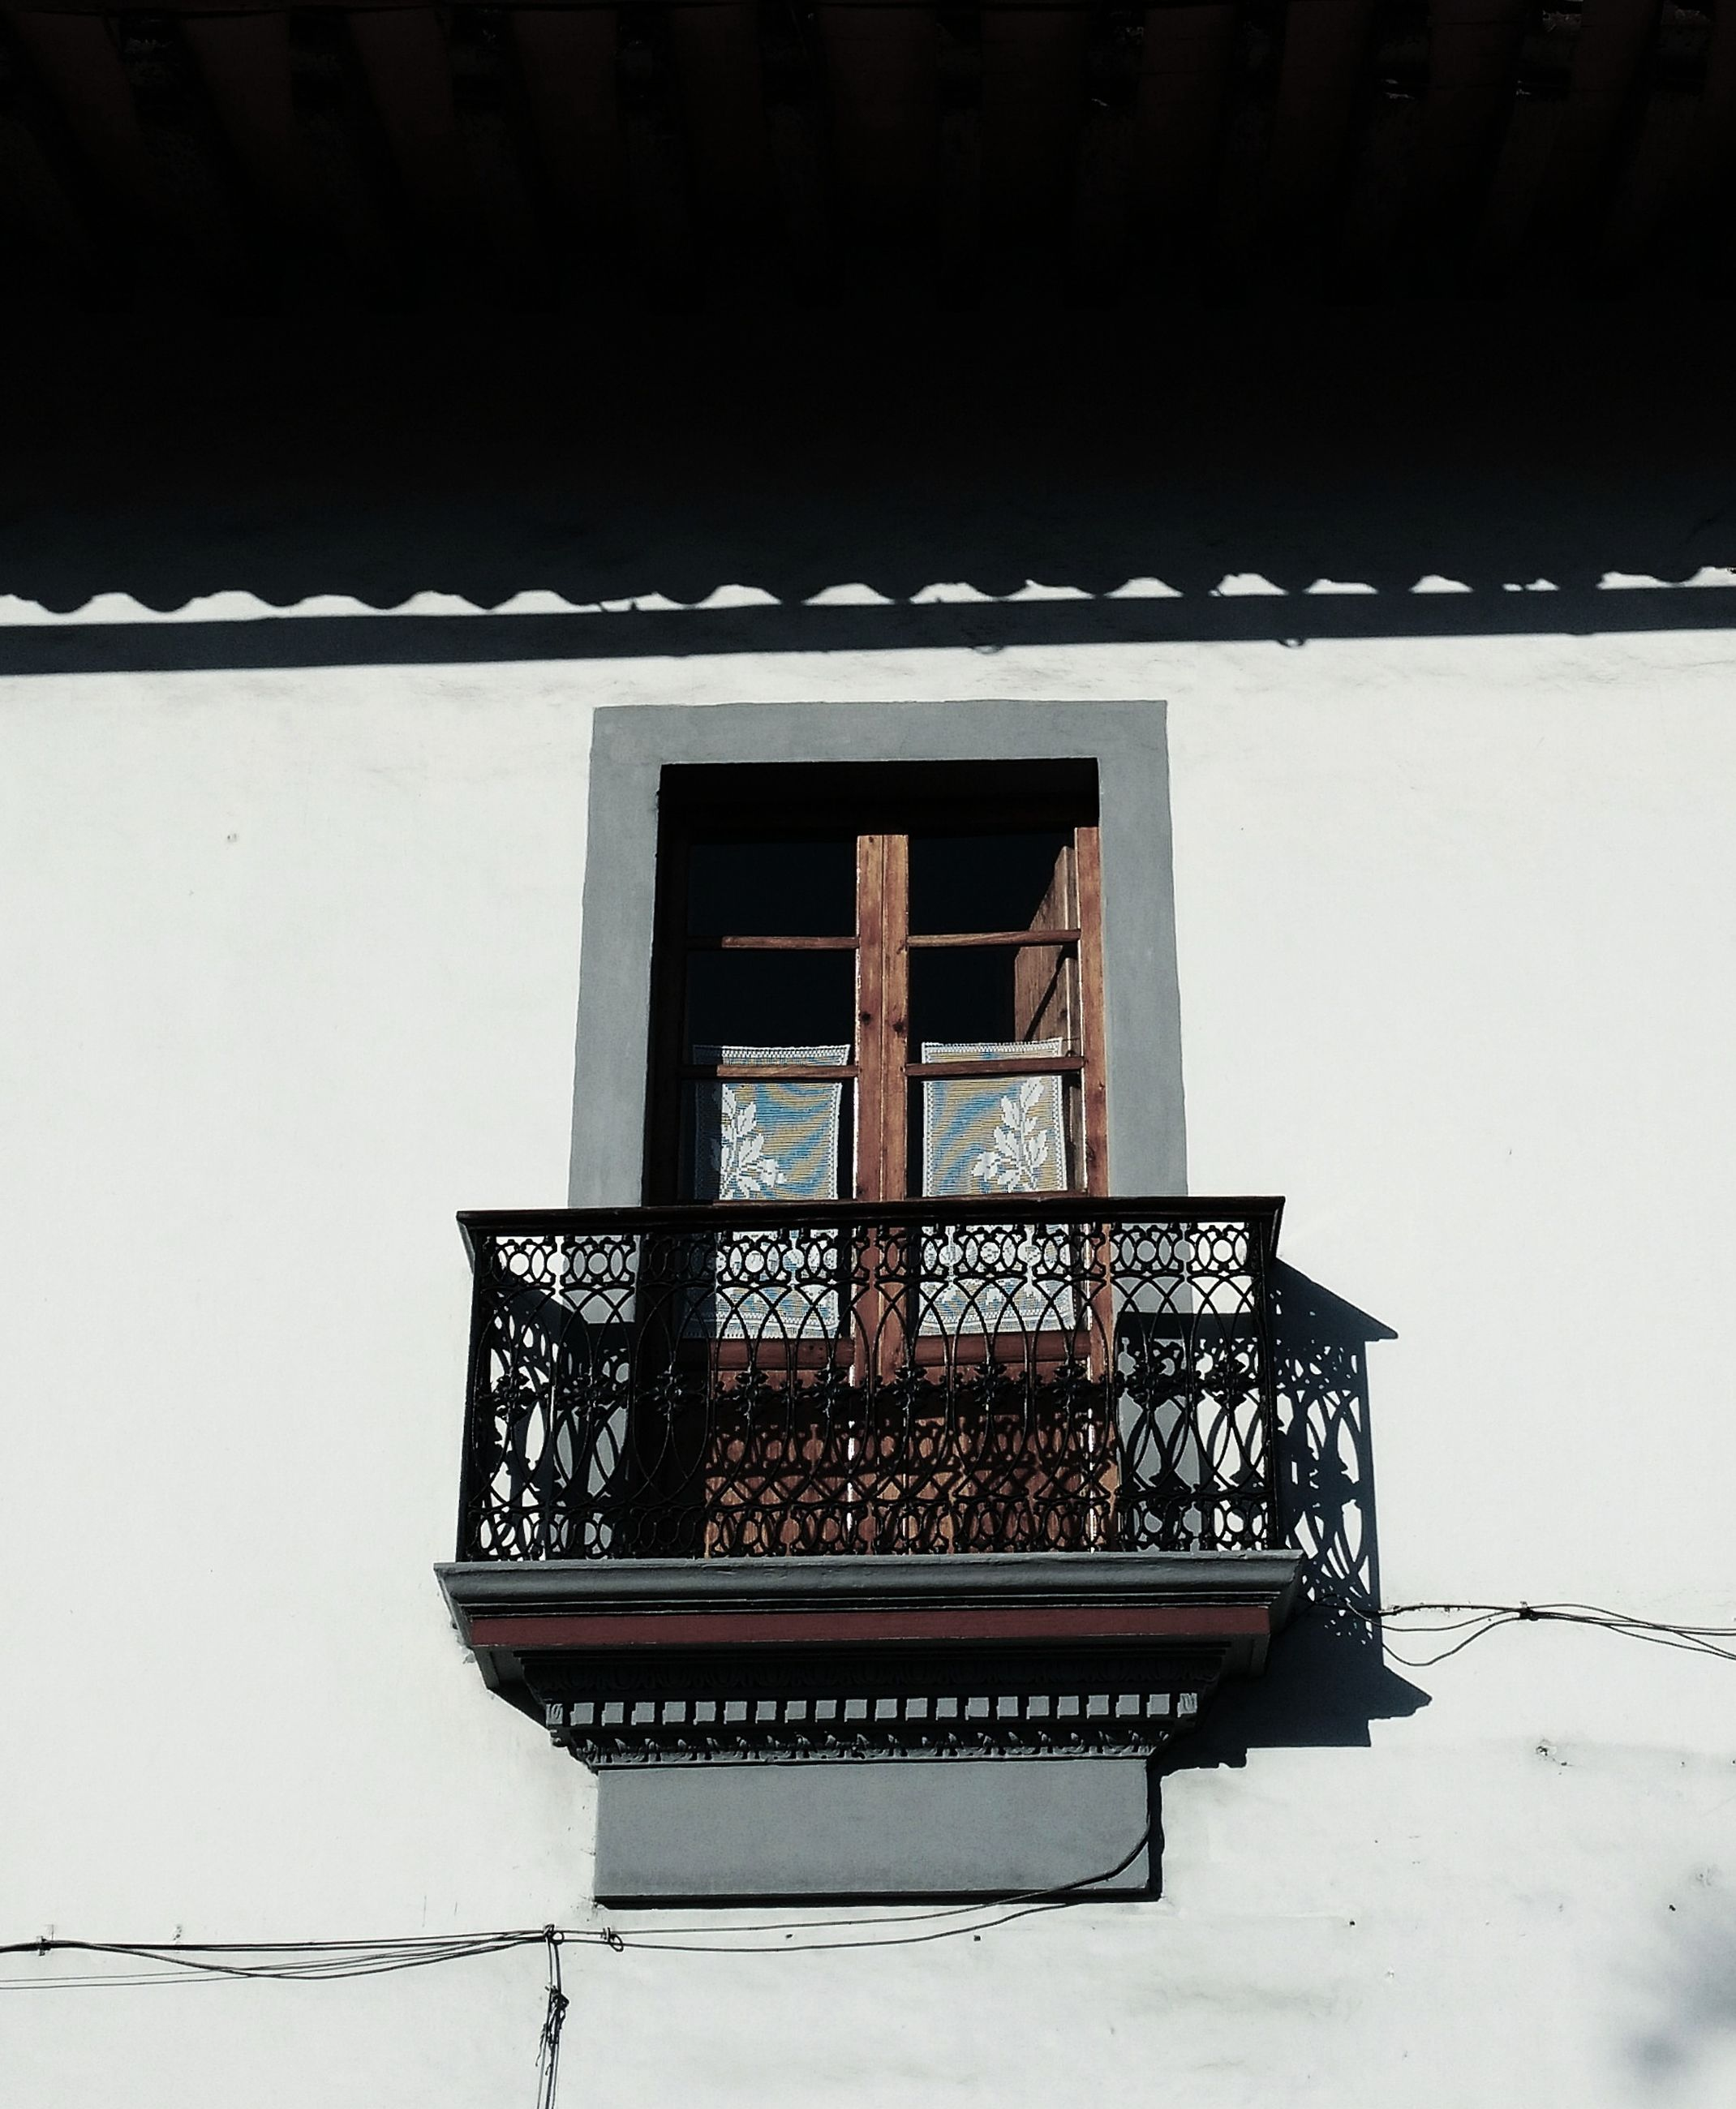 window, built structure, architecture, building exterior, day, outdoors, geometric shape, no people, wrought iron